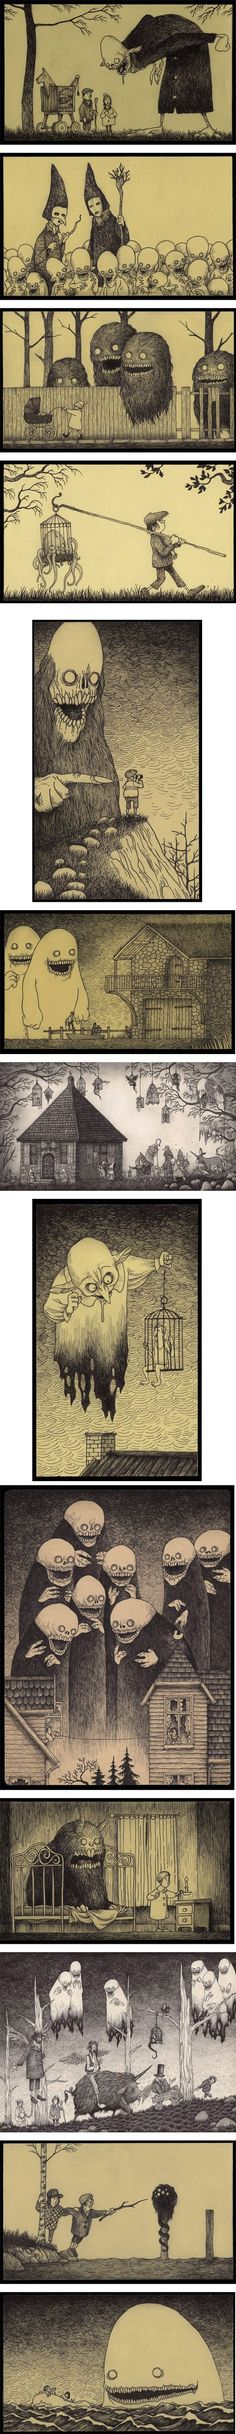 John #Kenn - Post-it Monstres: